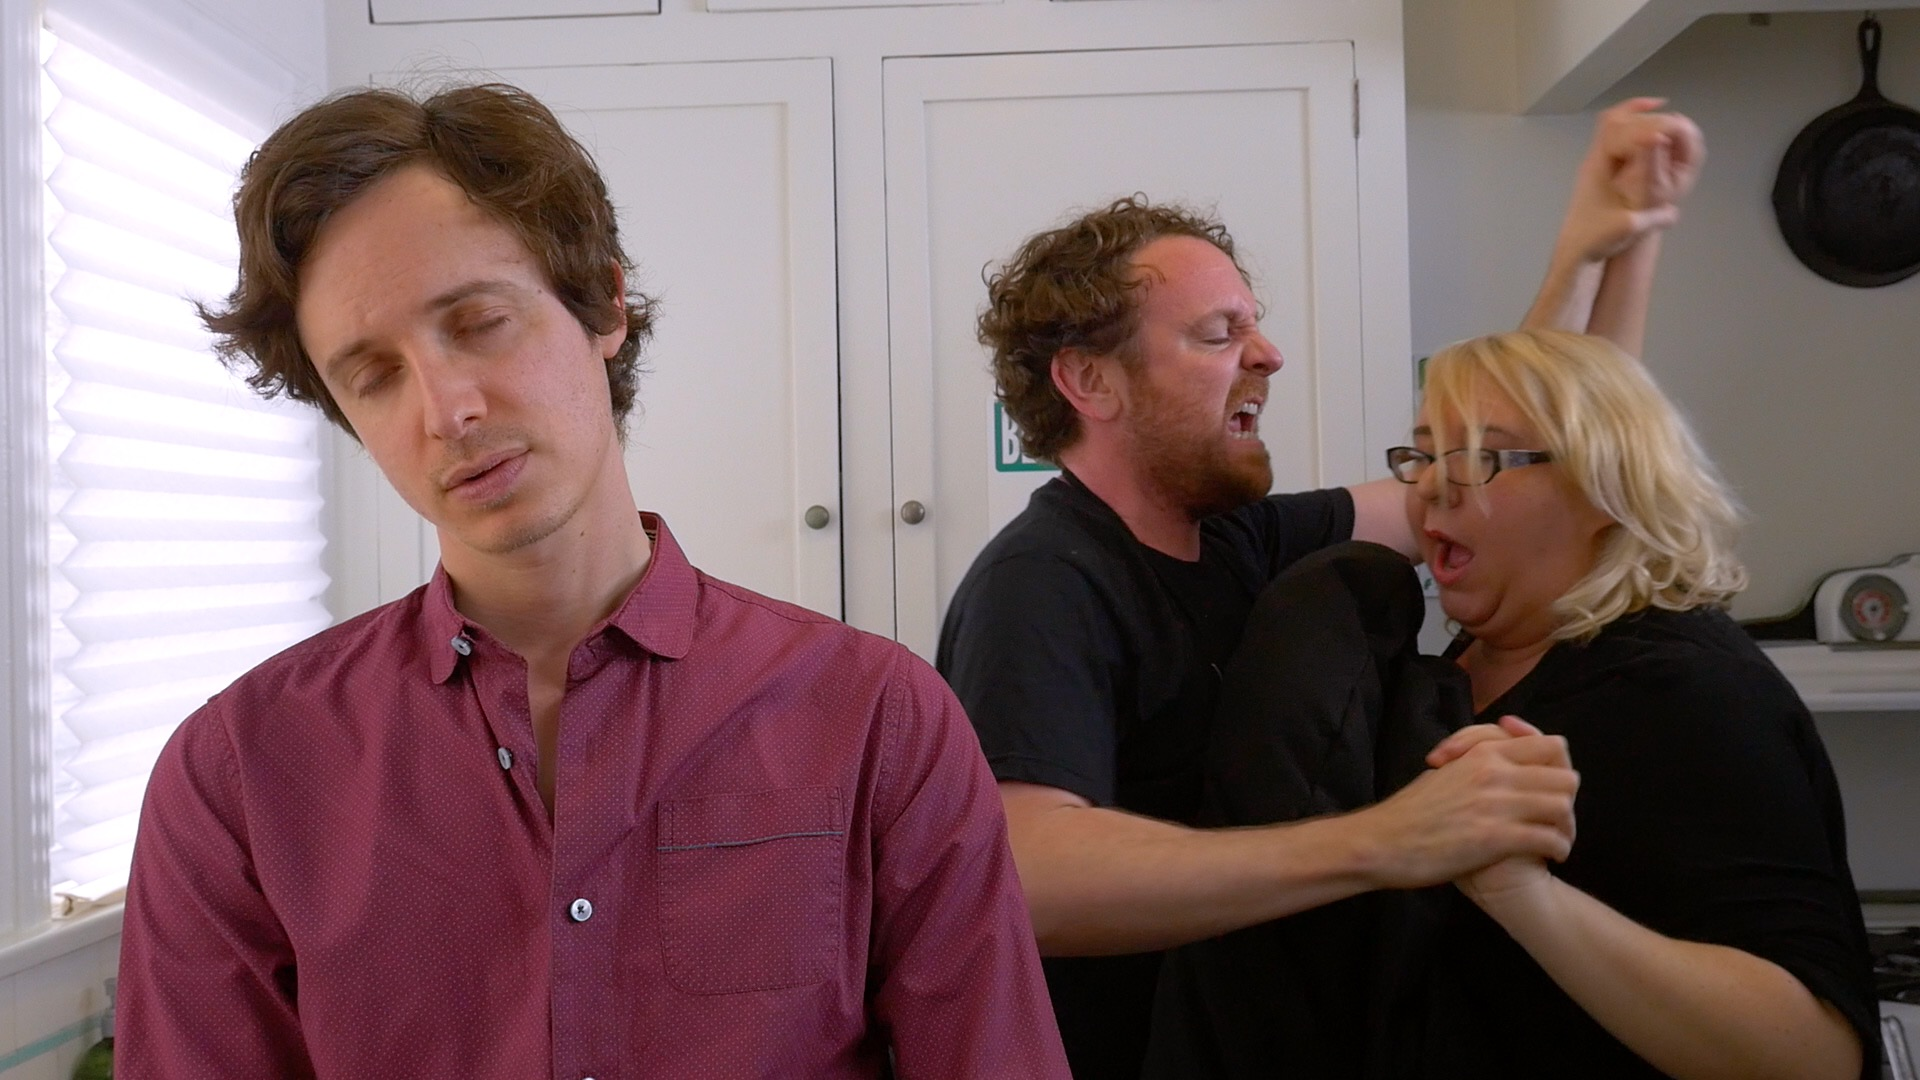 Last Will and Testicle Season 2 - Cancer survivor (Byron Lane) harassed by Lump of Testicular Cancer (Drew Droege) and Lump of Ovarian Cancer (Jaime Moyer).